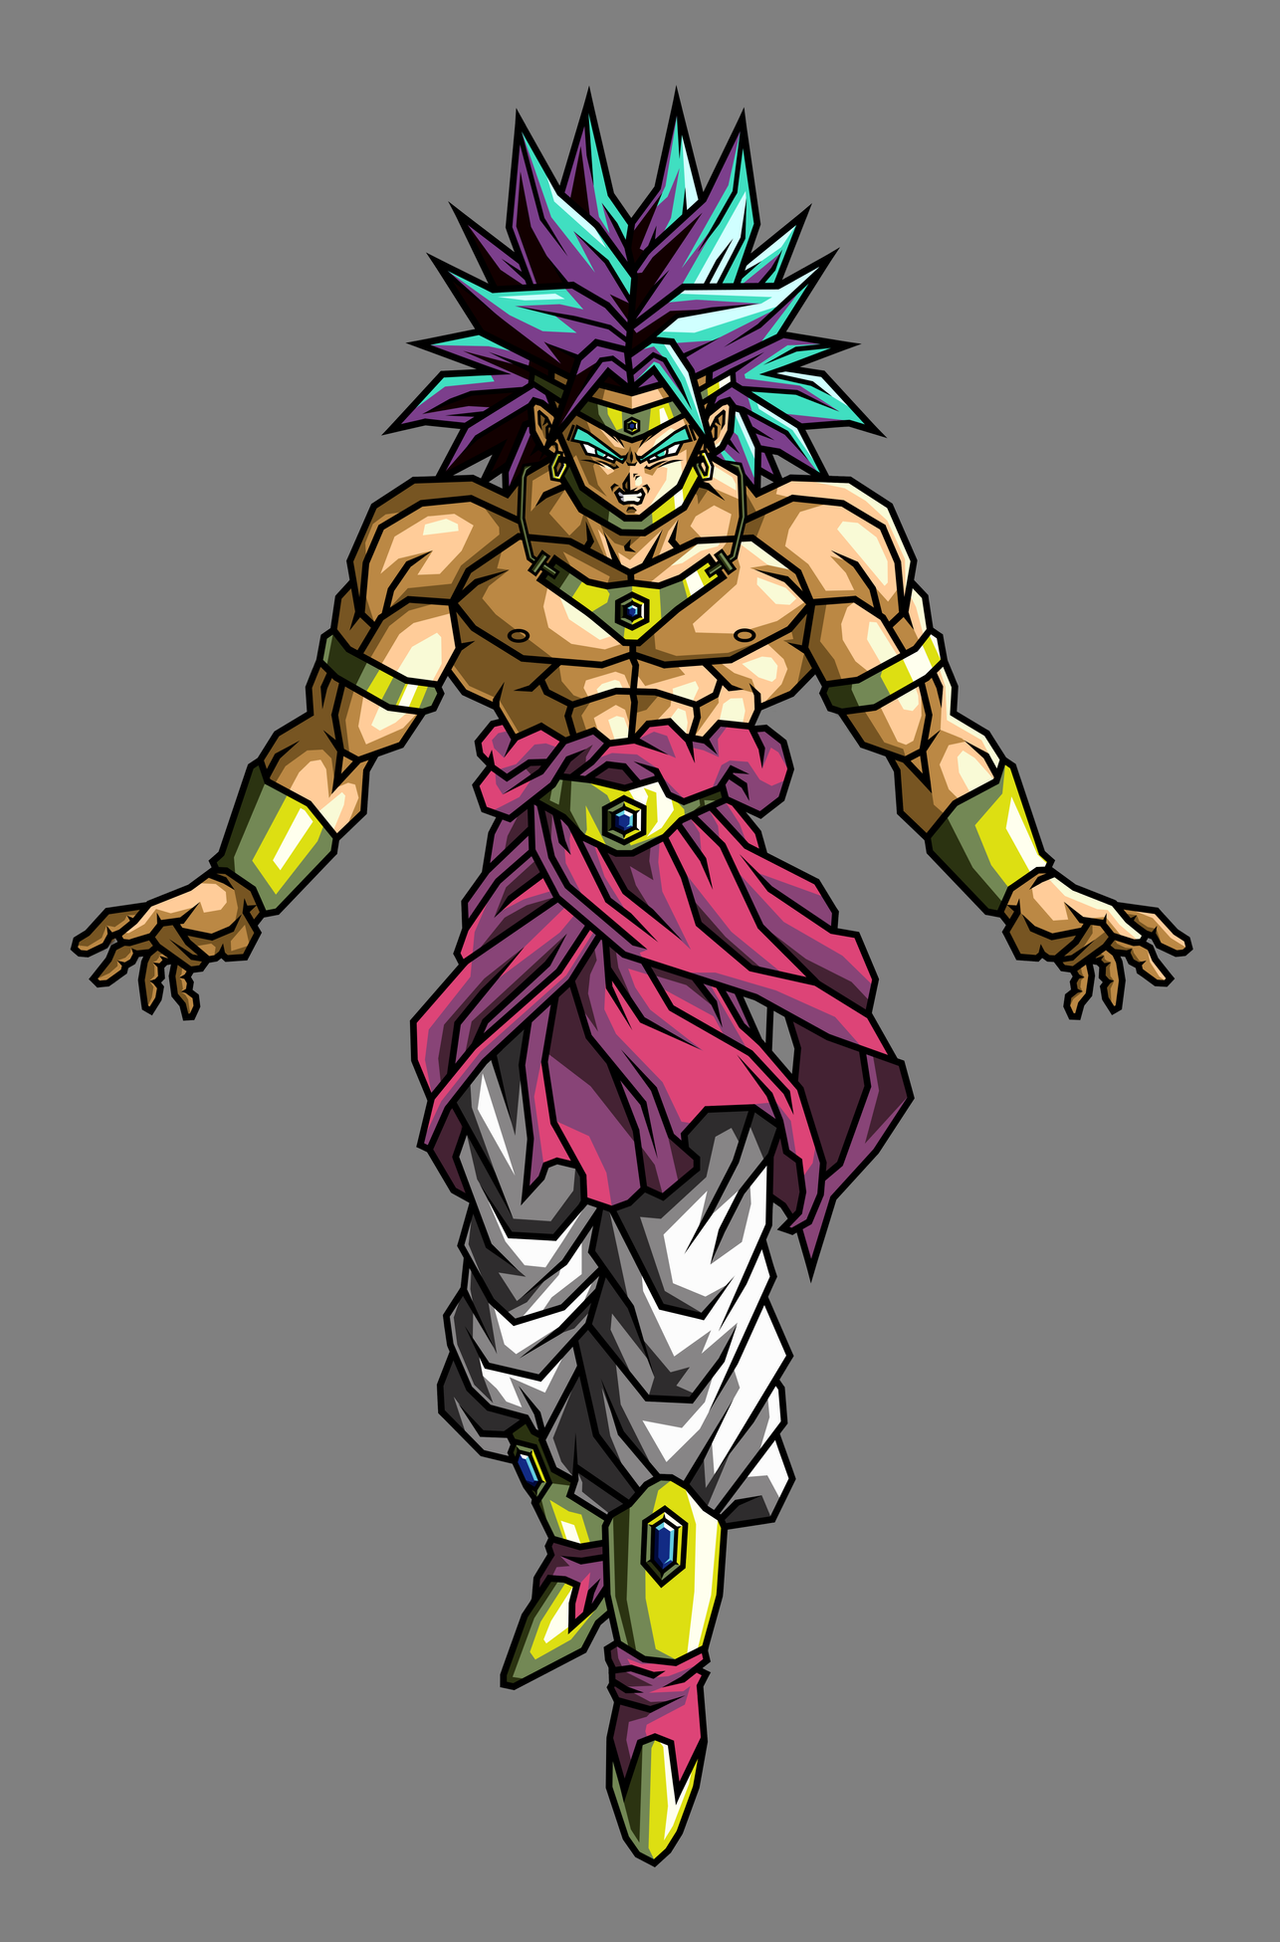 Broly rssj by hsvhrt on deviantart - Broly dragon ball gt ...